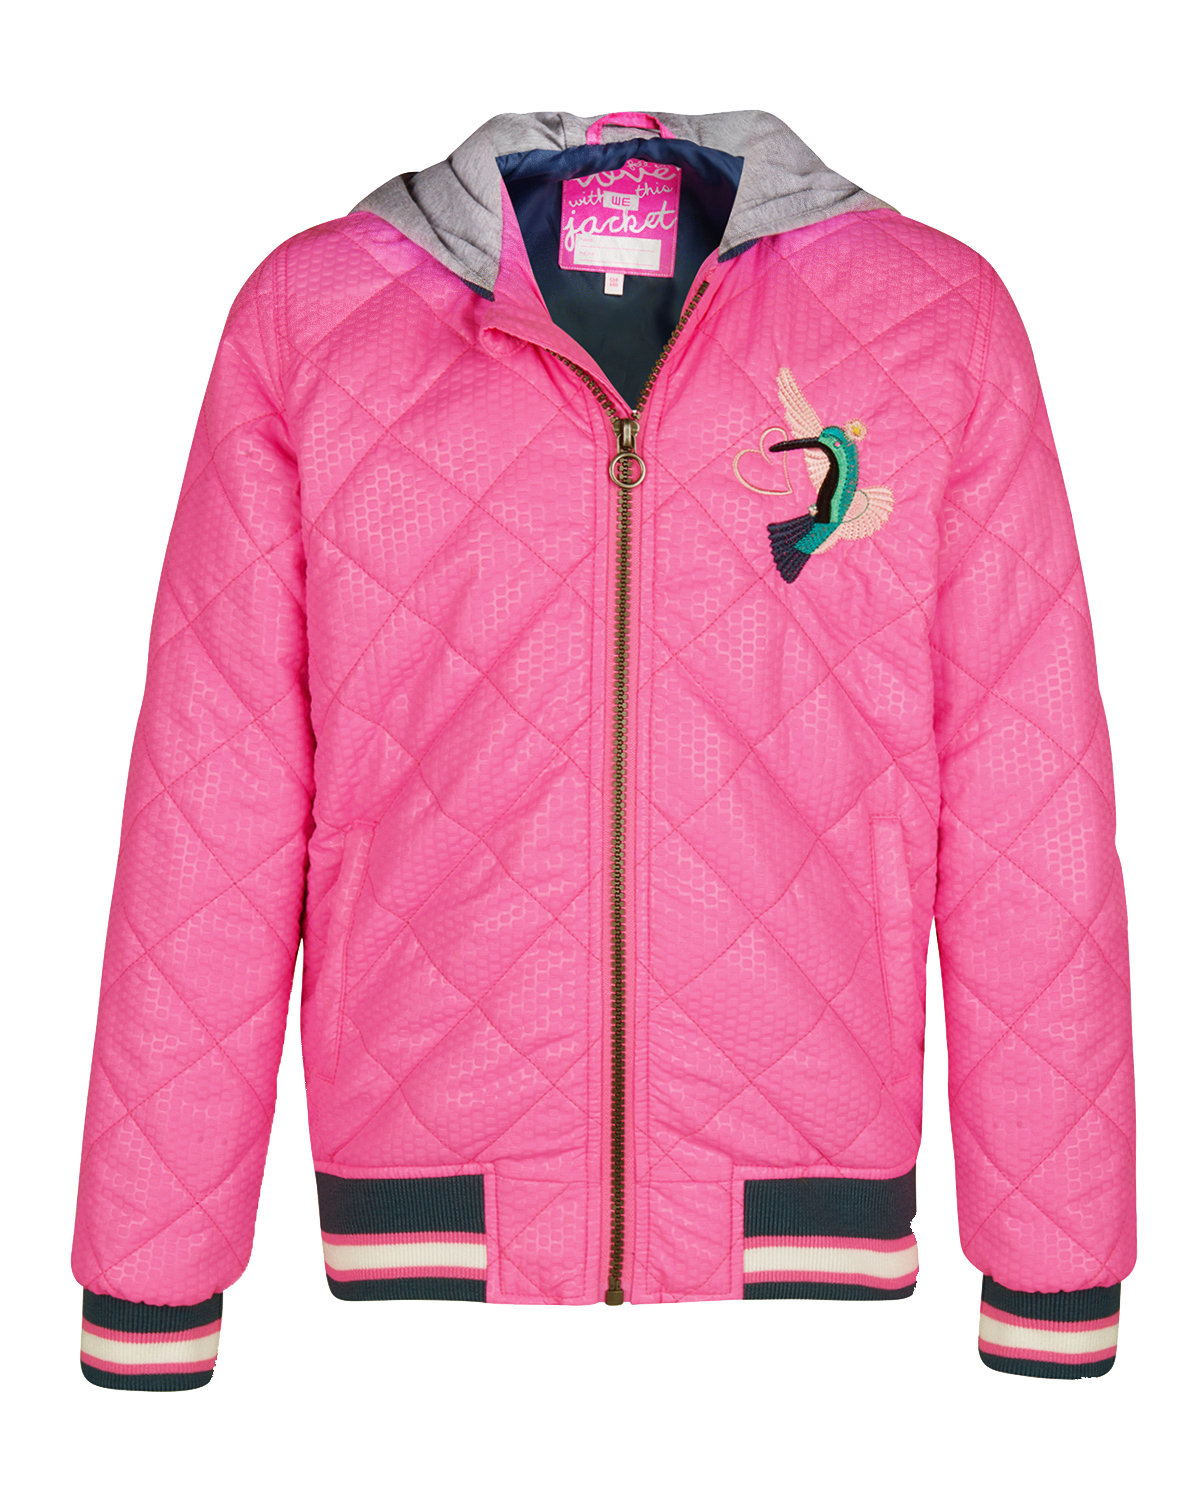 low priced 3e487 97694 MÄDCHEN-BOMBERJACKE MIT STEPPMUSTER | 80484653 - WE Fashion